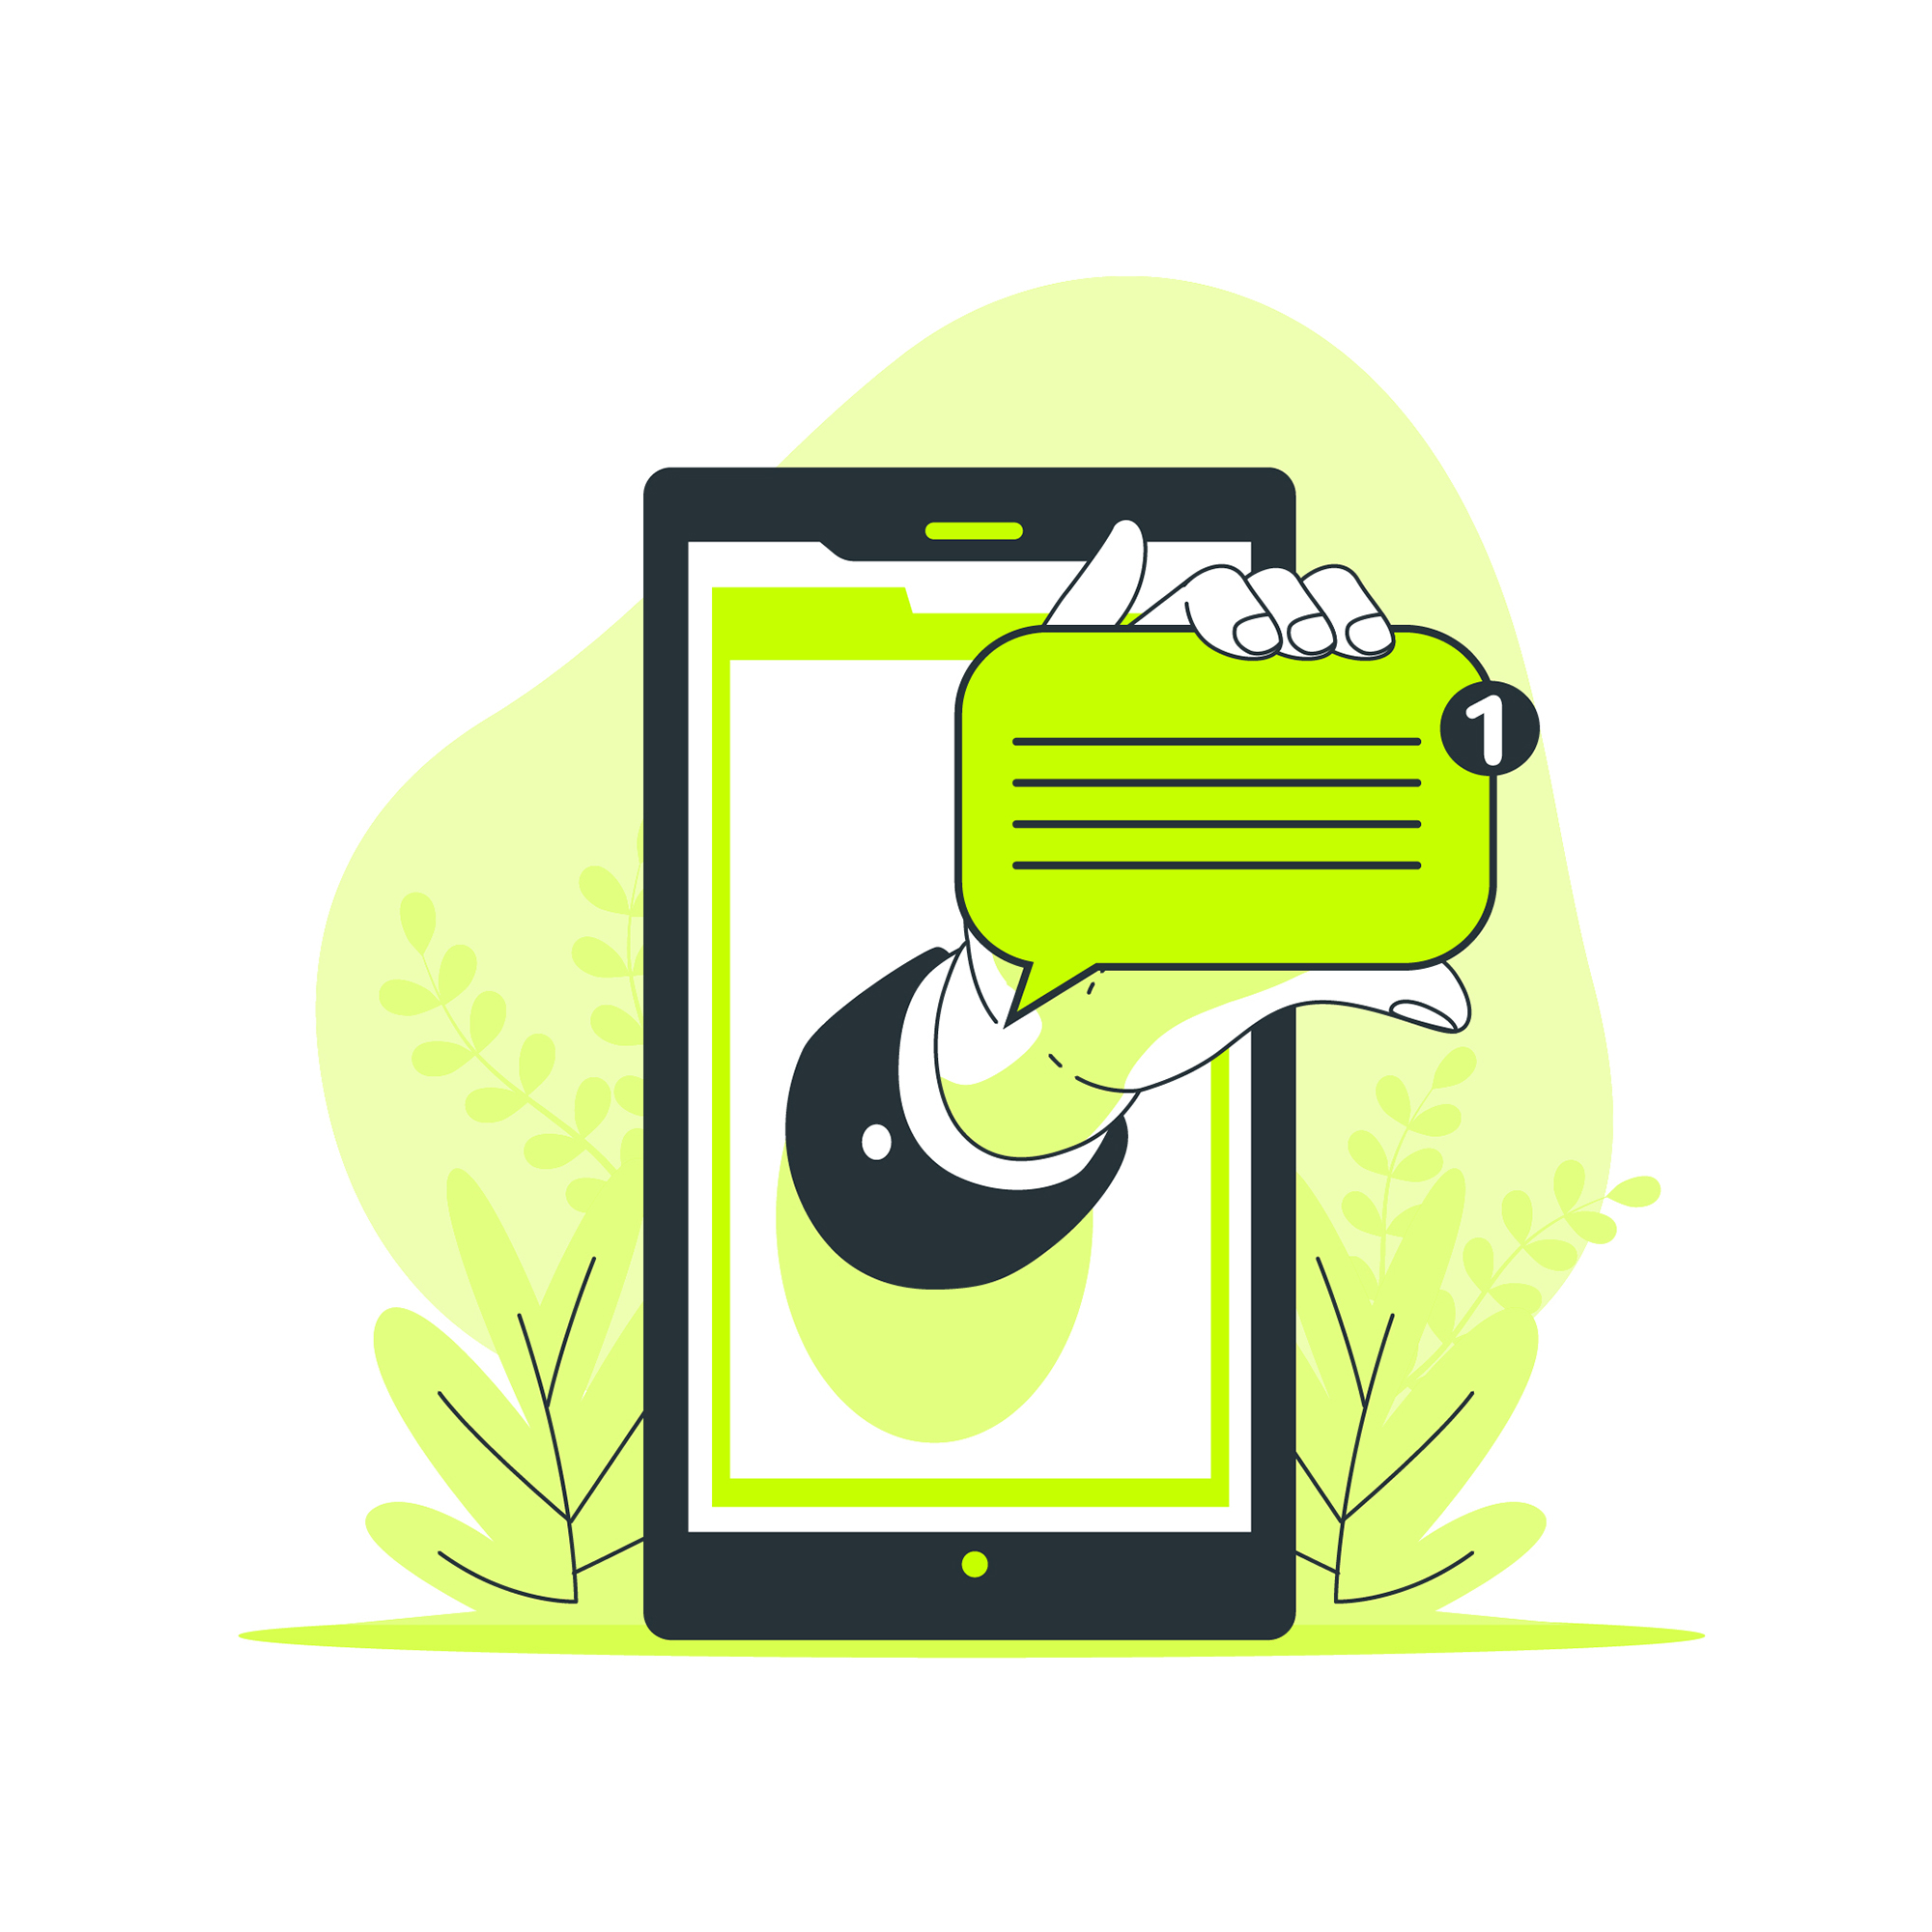 SMS Blasting is a good way to get closer to your contacts